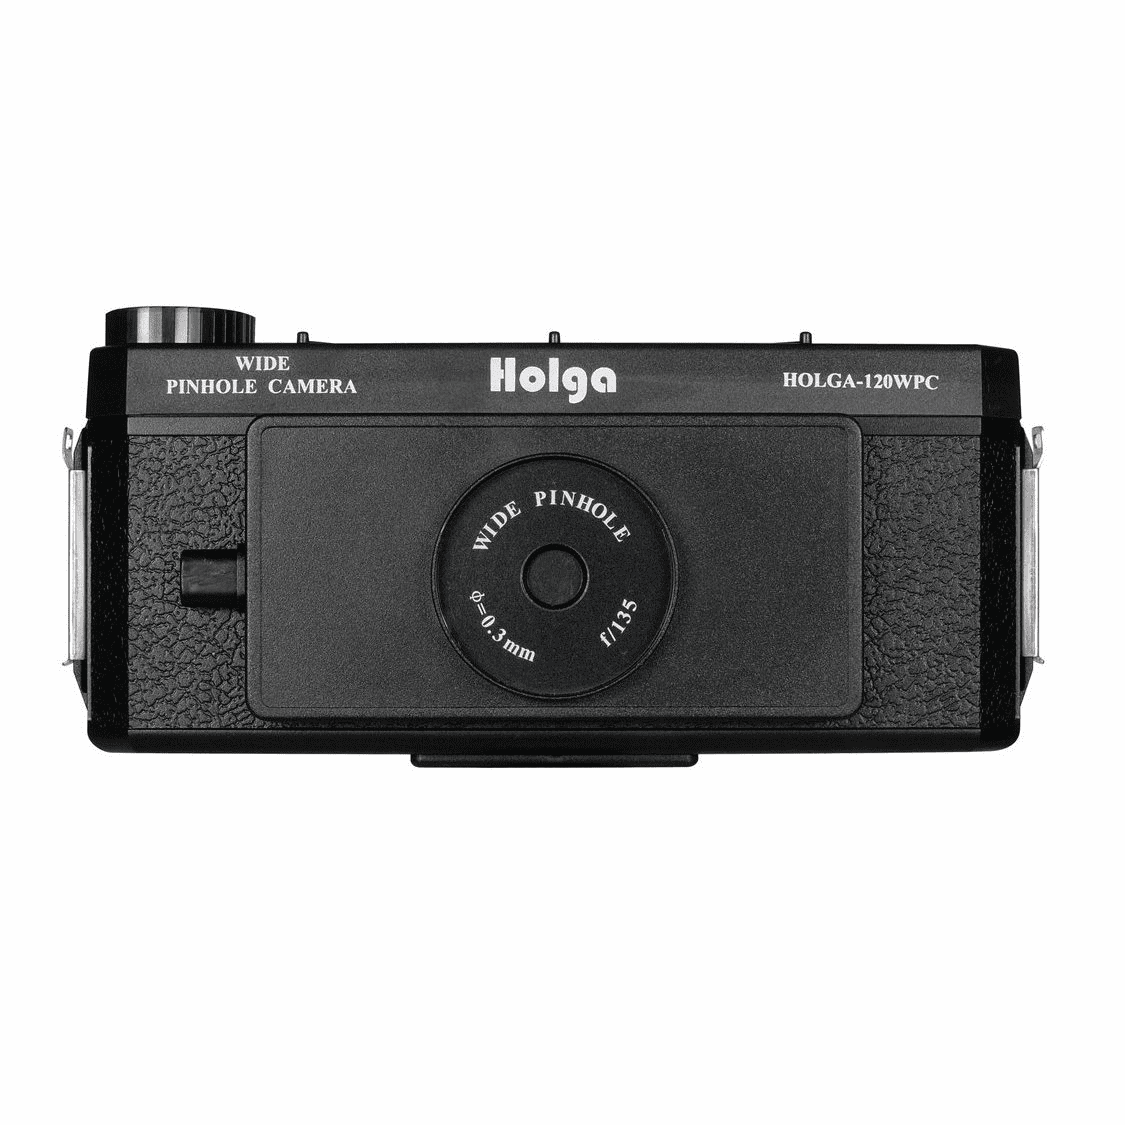 Holga 120 Camera Wide Pinhole Camera Black 120WPC